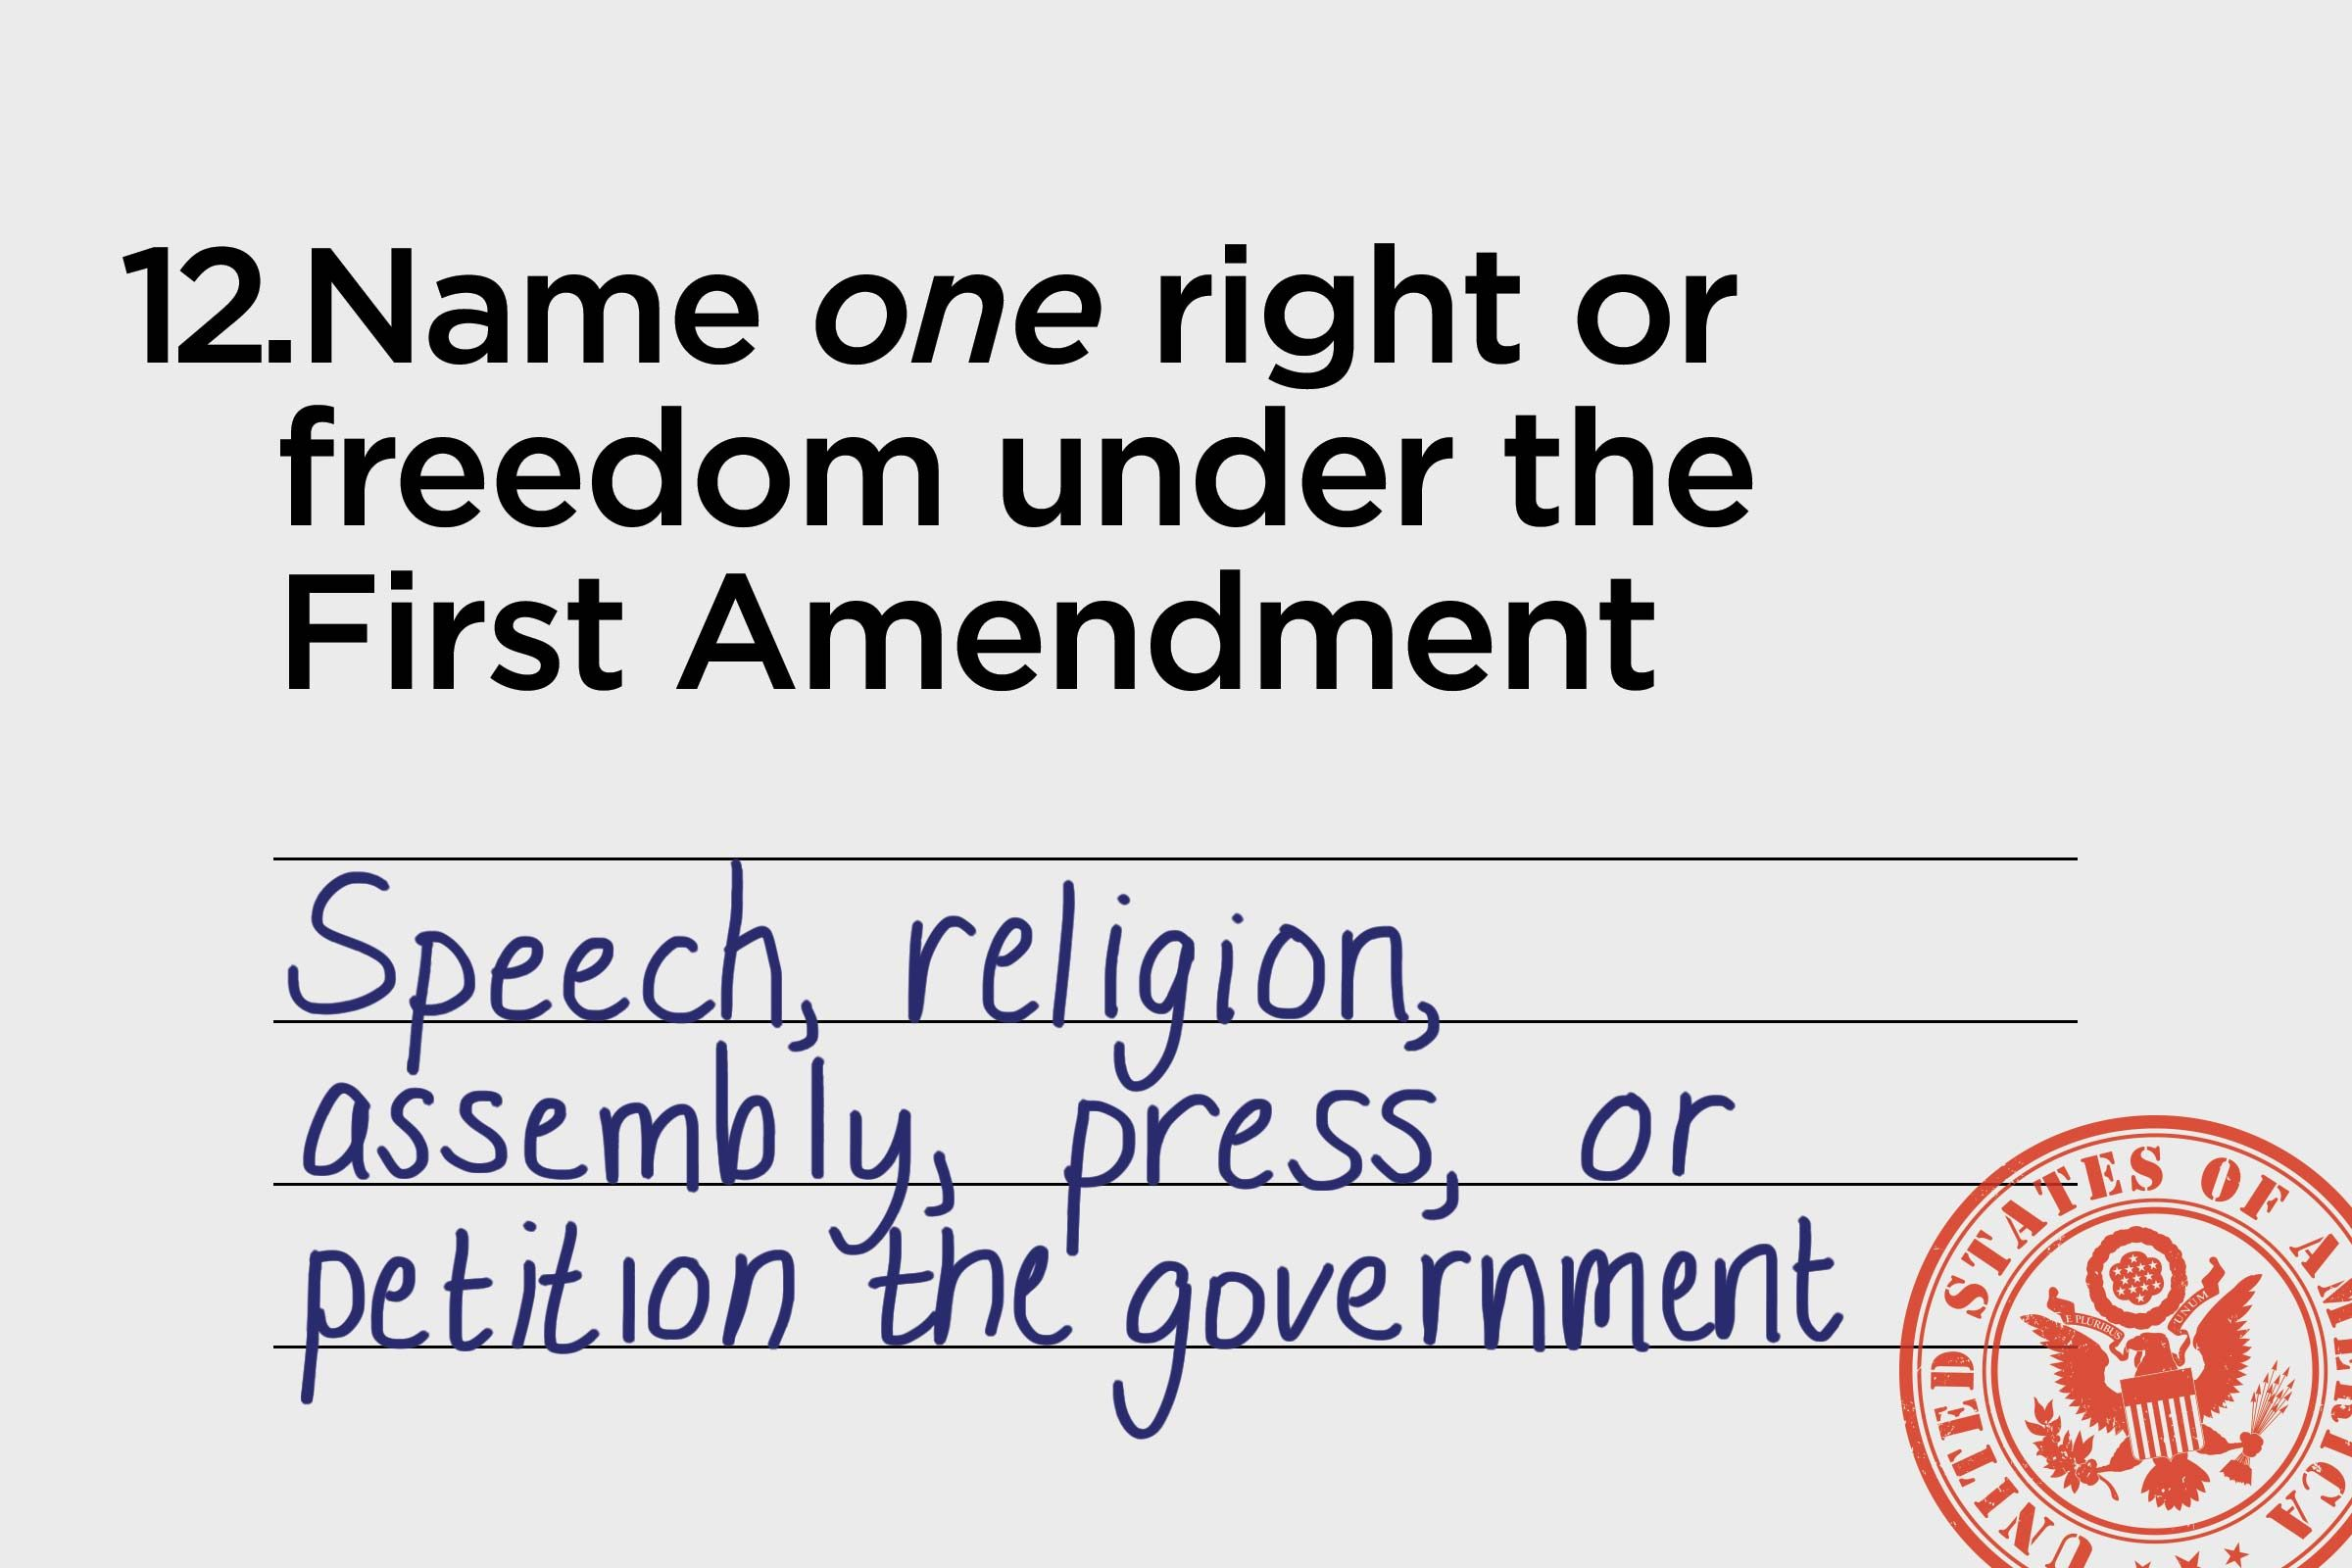 speech, religion, assembly, press, or petition the government